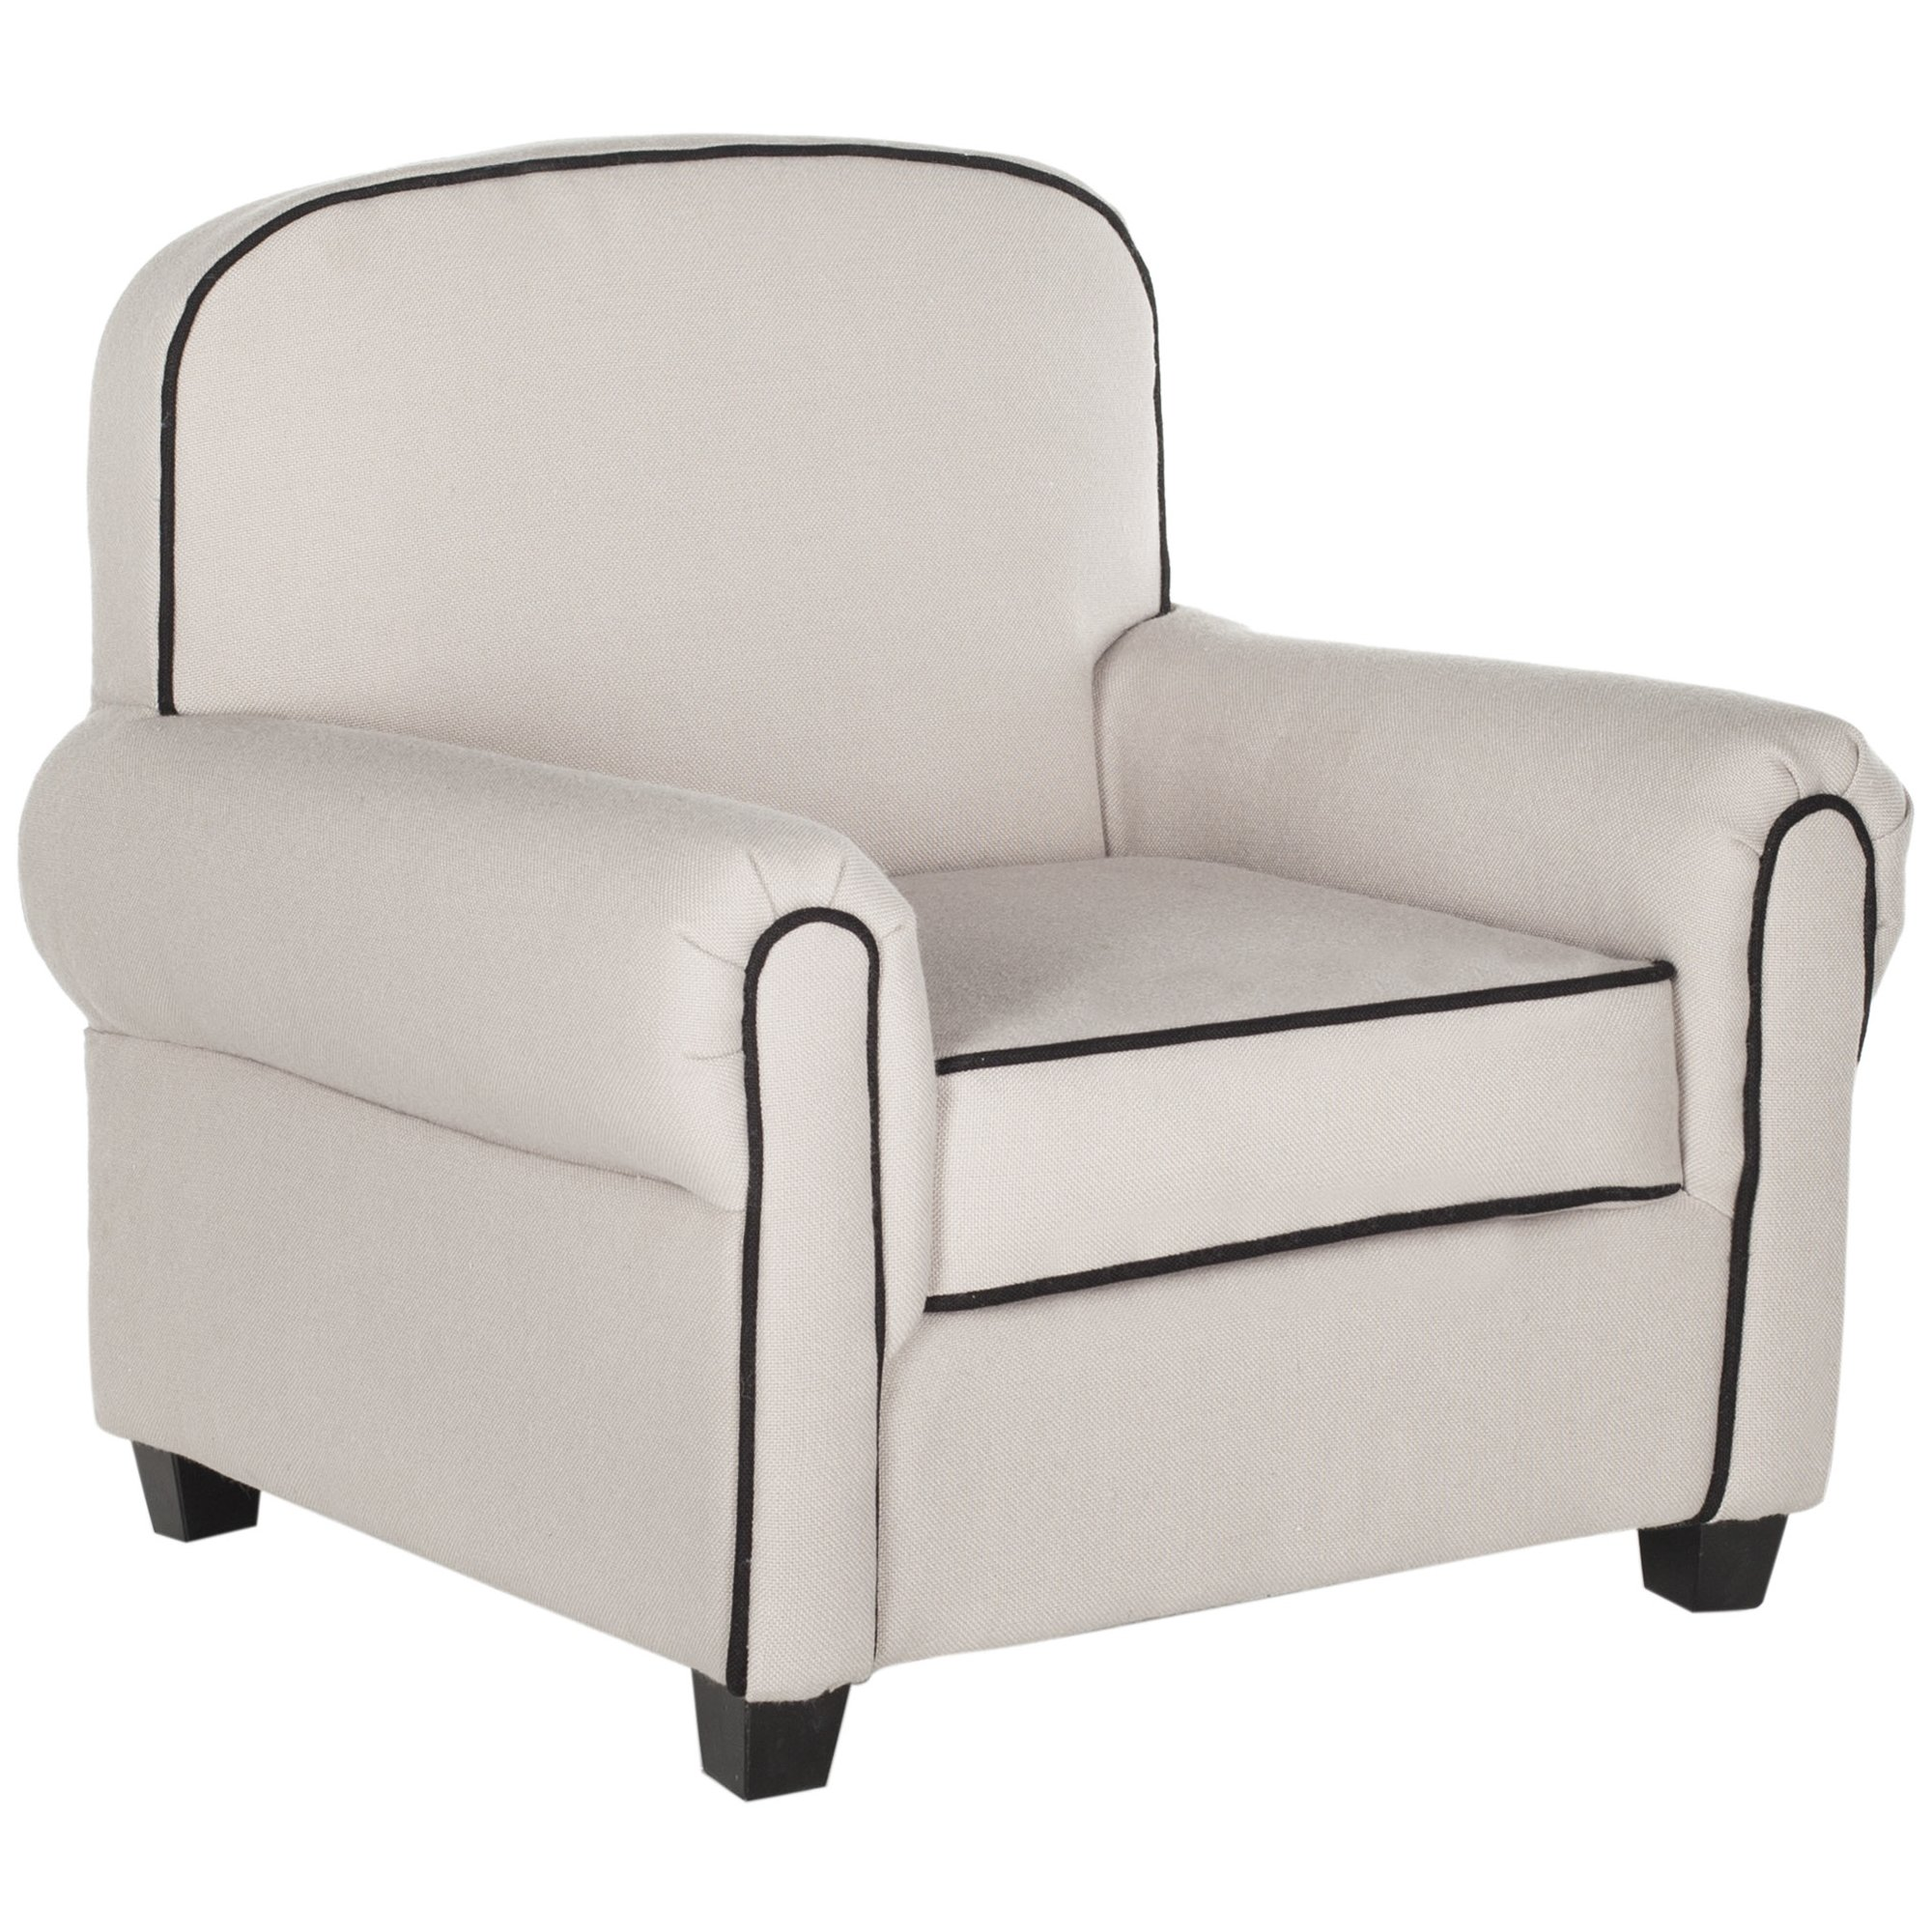 Safavieh Kids Collection Tiny Tycoon Club Chair, Taupe